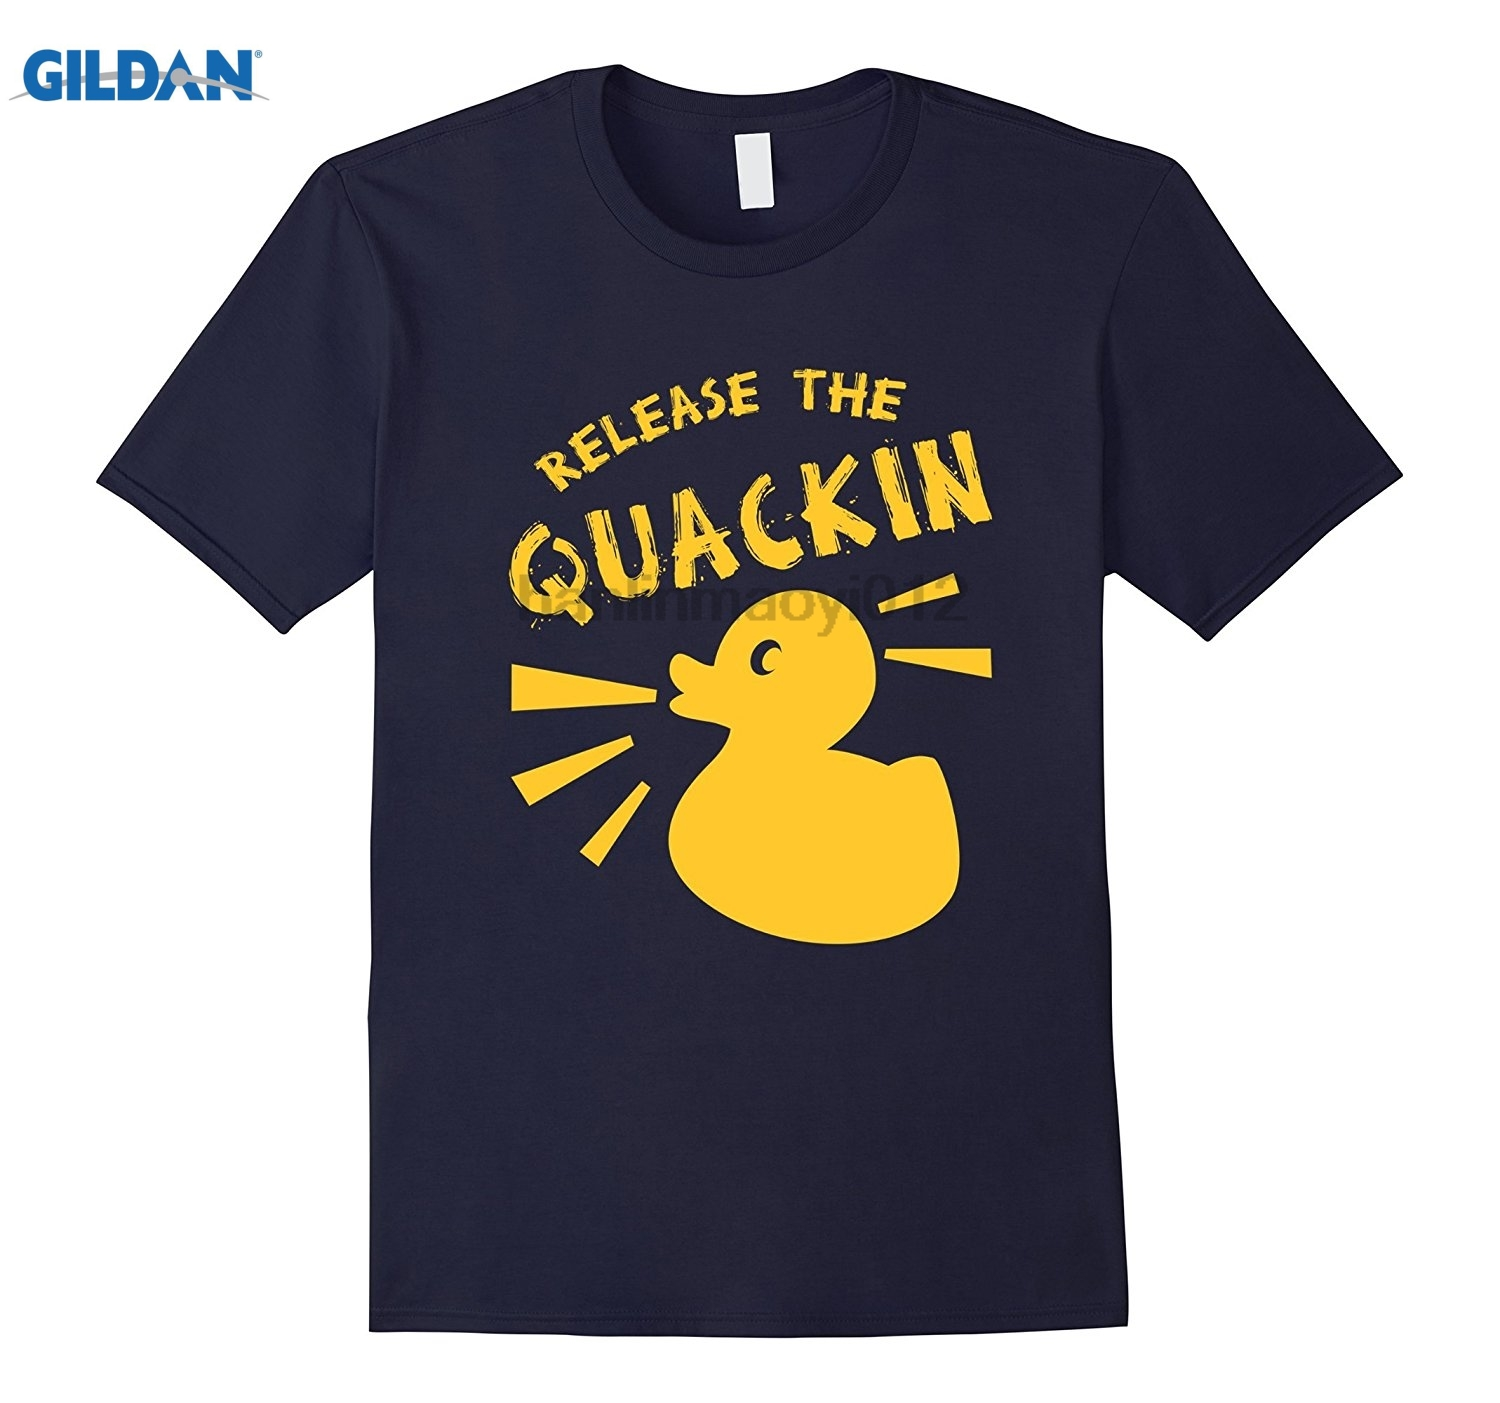 GILDAN CUTE RELEASE THE QUACKIN T-SHIRT Funny Yellow Rubber Duck Womens T-shirt